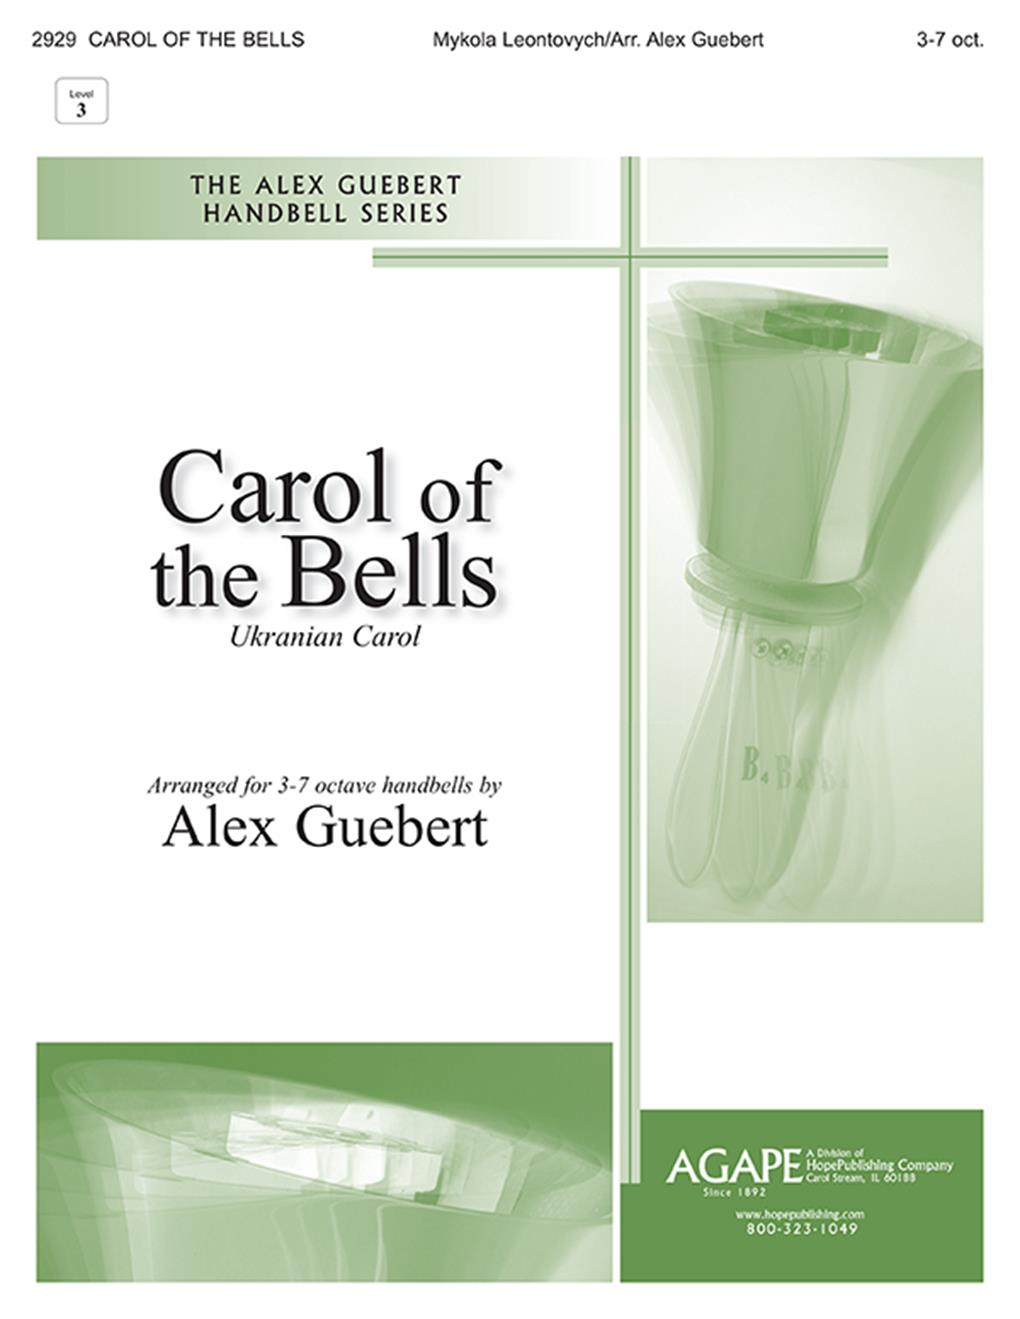 Carol of the Bells - 3-7 Oct. Cover Image